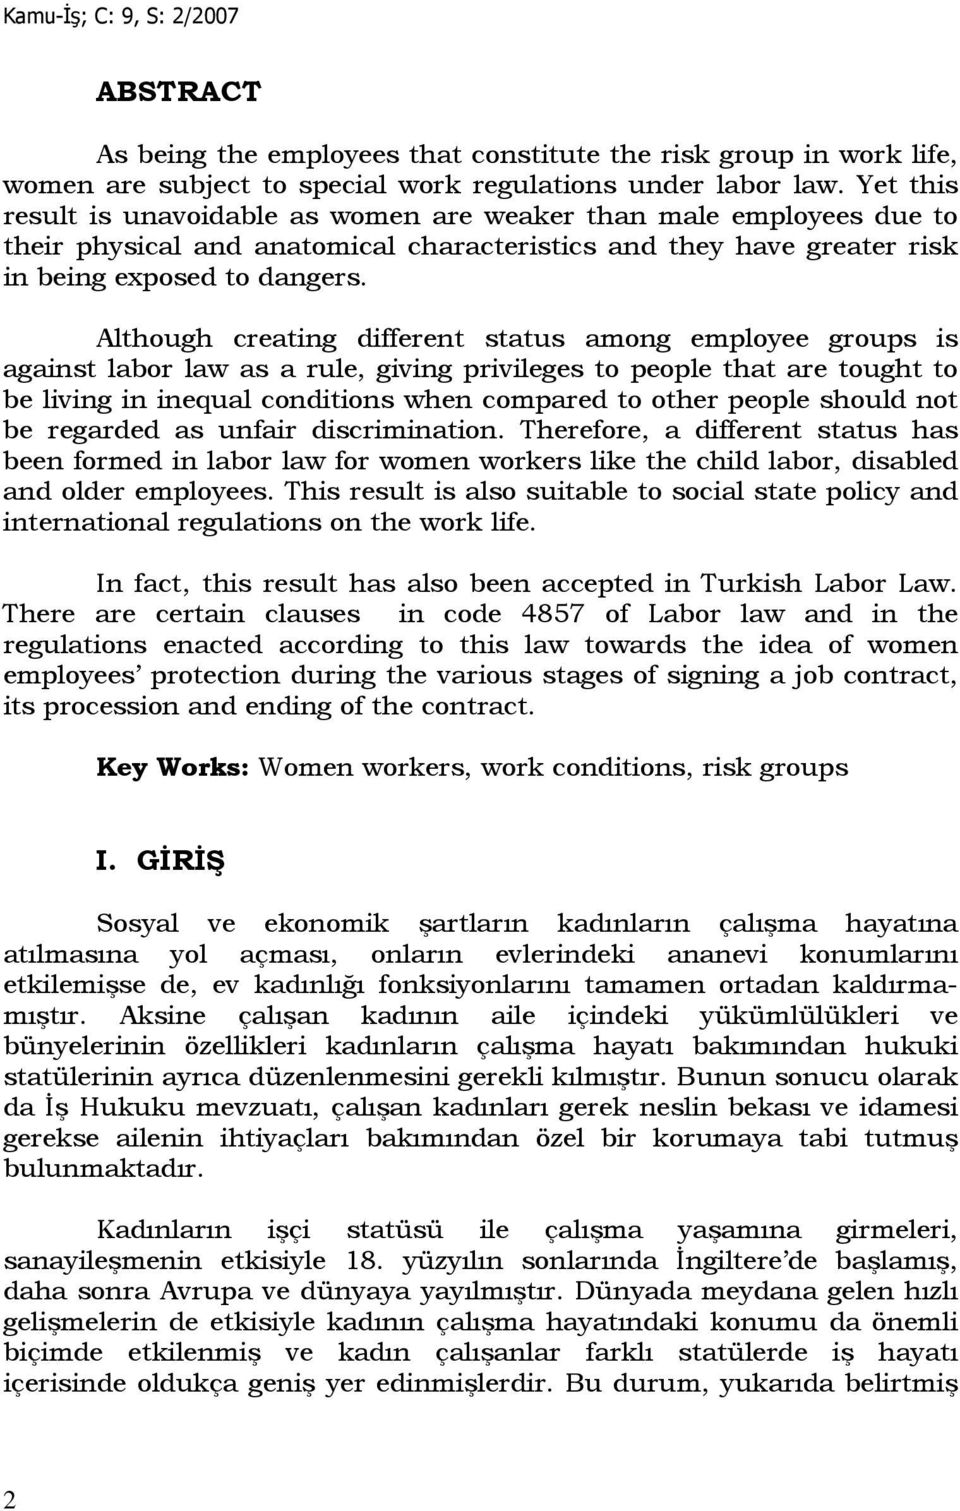 Although creating different status among employee groups is against labor law as a rule, giving privileges to people that are tought to be living in inequal conditions when compared to other people